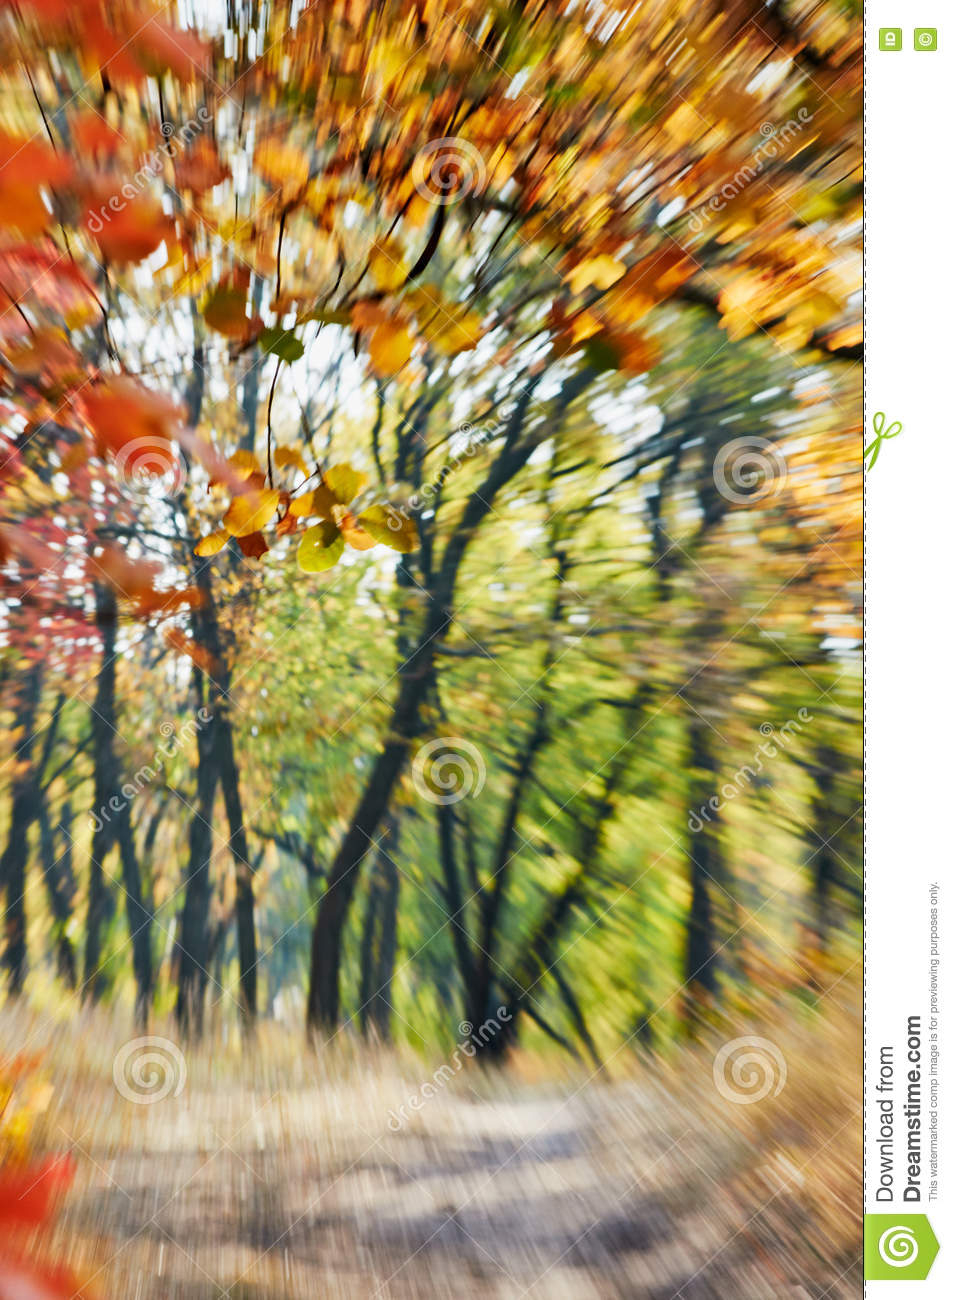 autumn motion zoom blurred abstract background natural colorful tree sunny forest natural